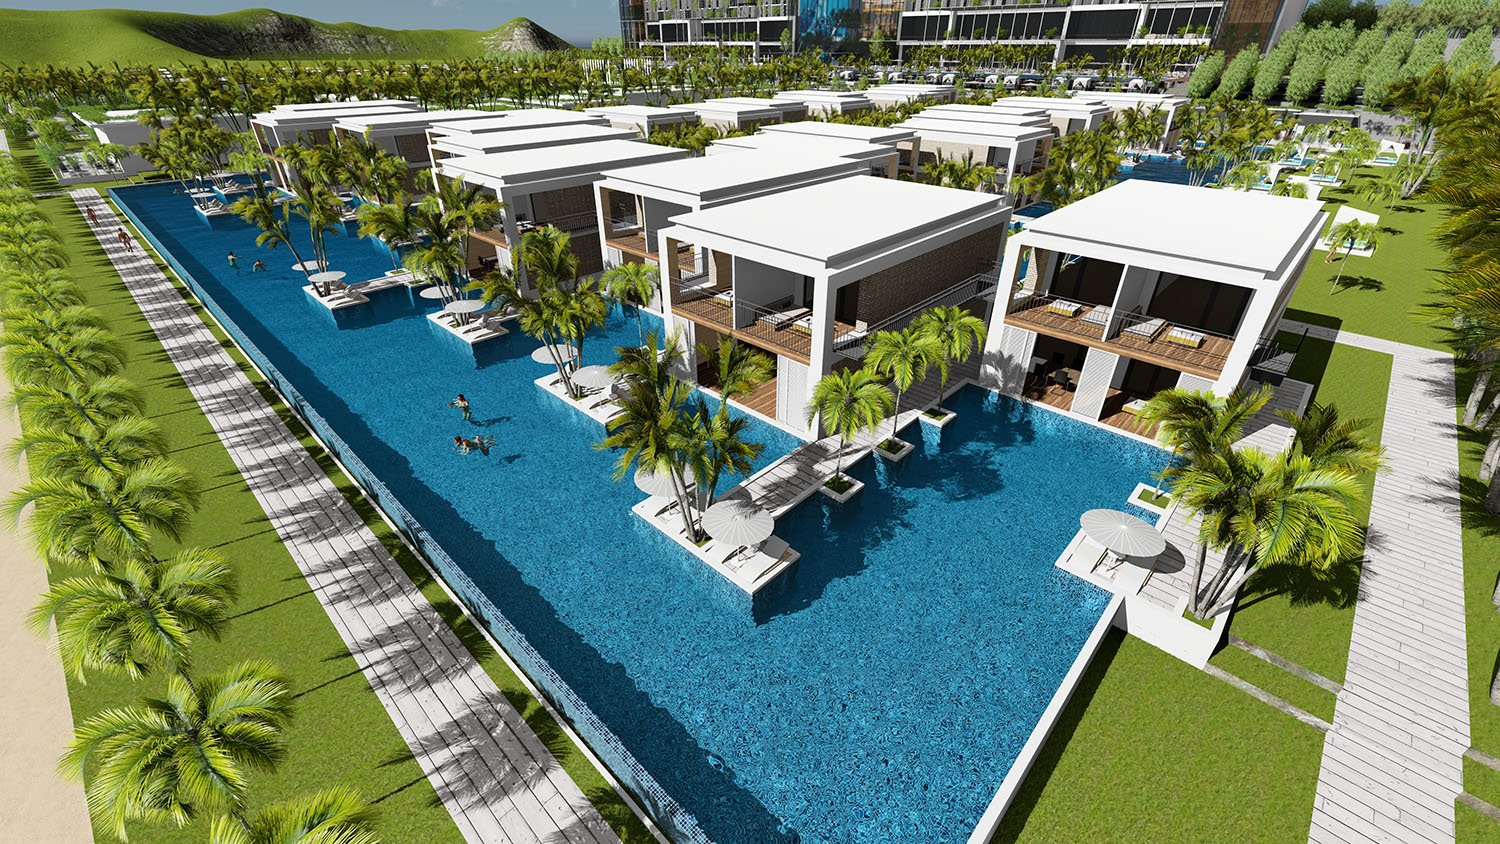 VILLAS LAKE2 VAHİT AKSOY